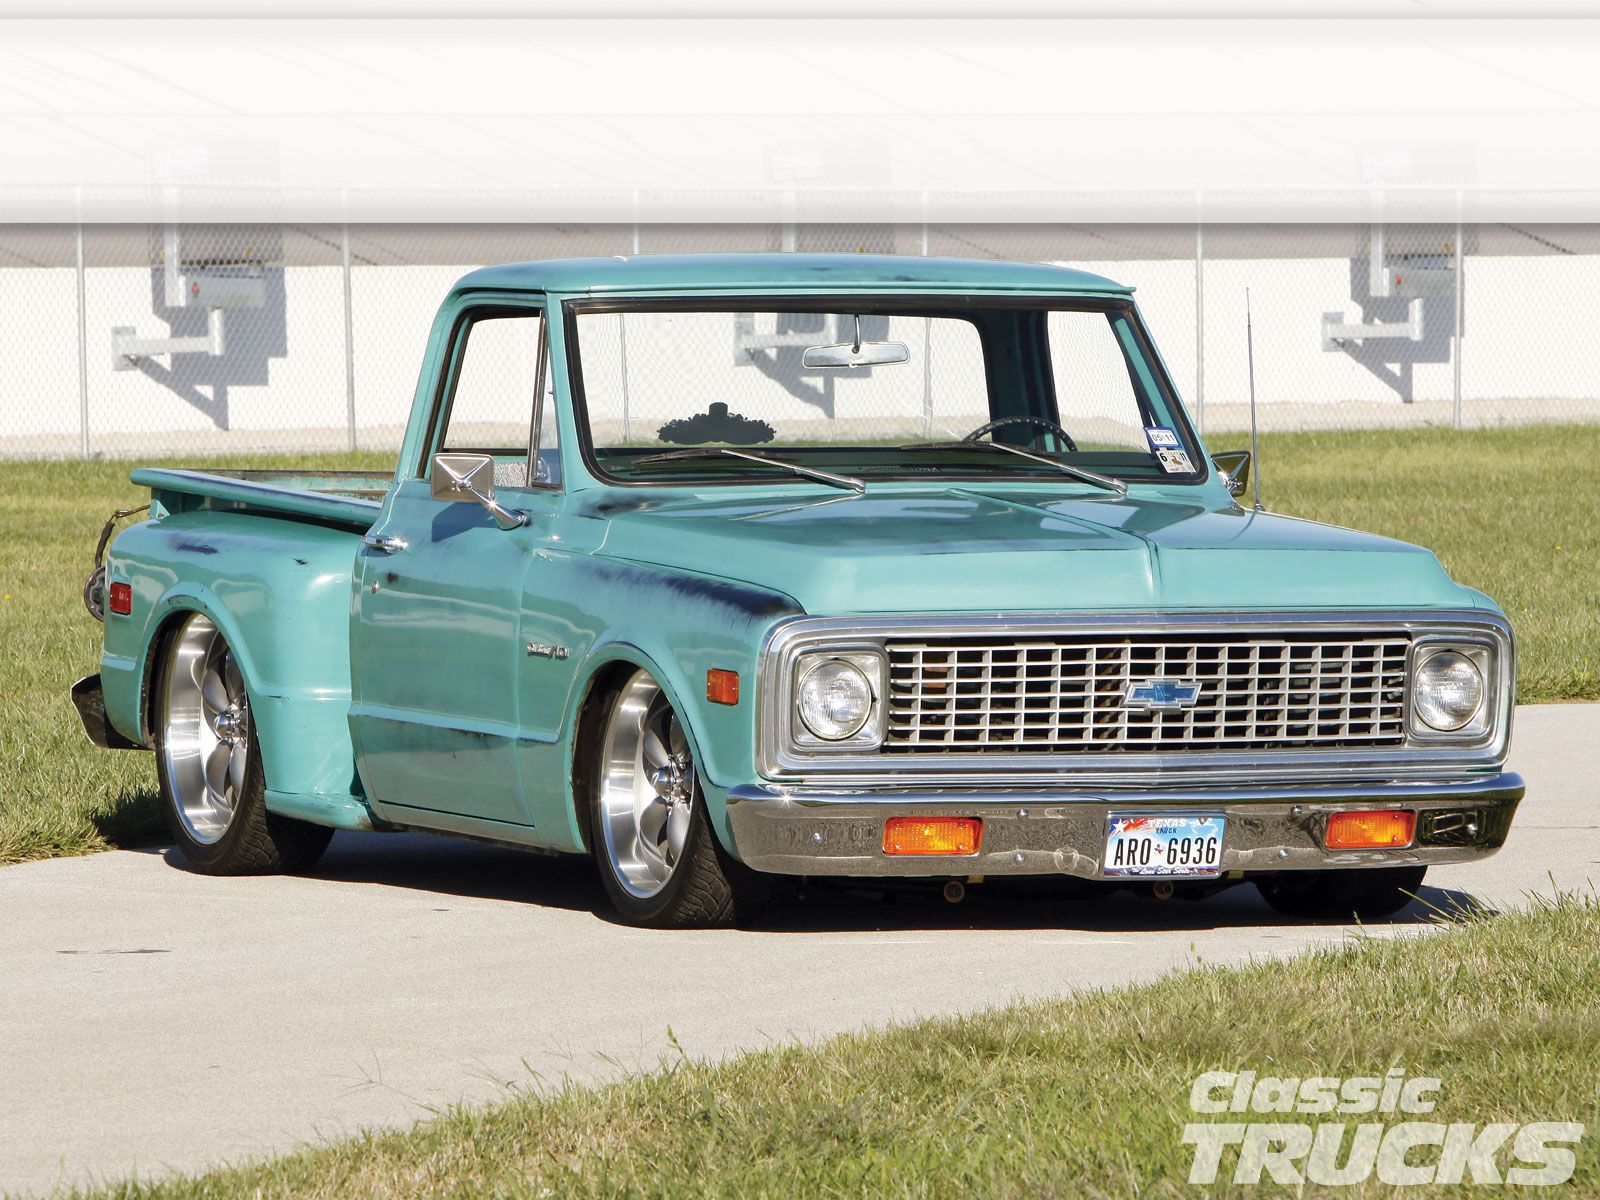 Custom 67 72 Chevy Trucks Register Or Log In To Remove These Advertisements Chevy Trucks Classic Trucks Chevy C10